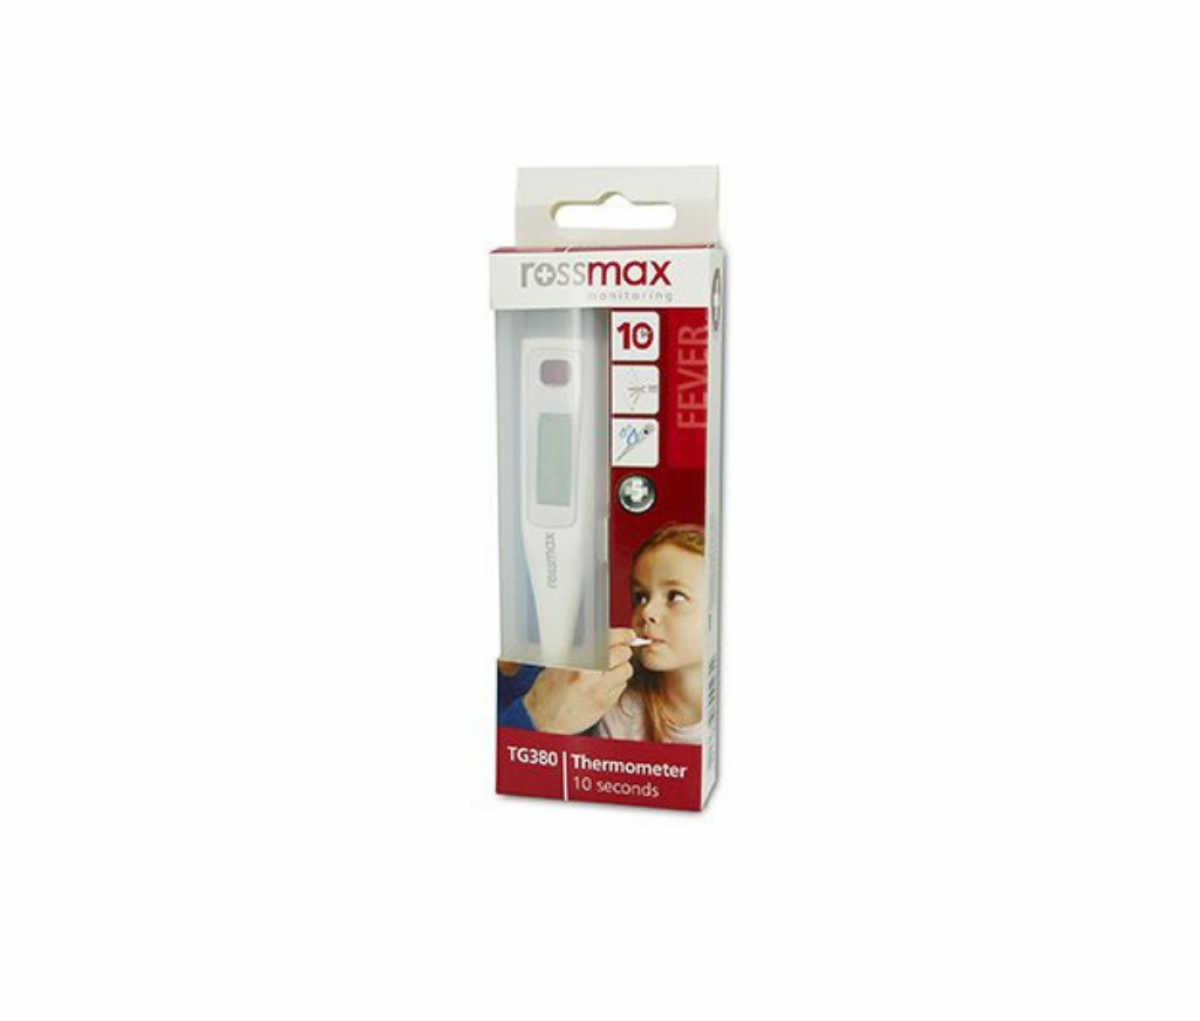 Rossmax TG380 Flexi Tip Thermometer